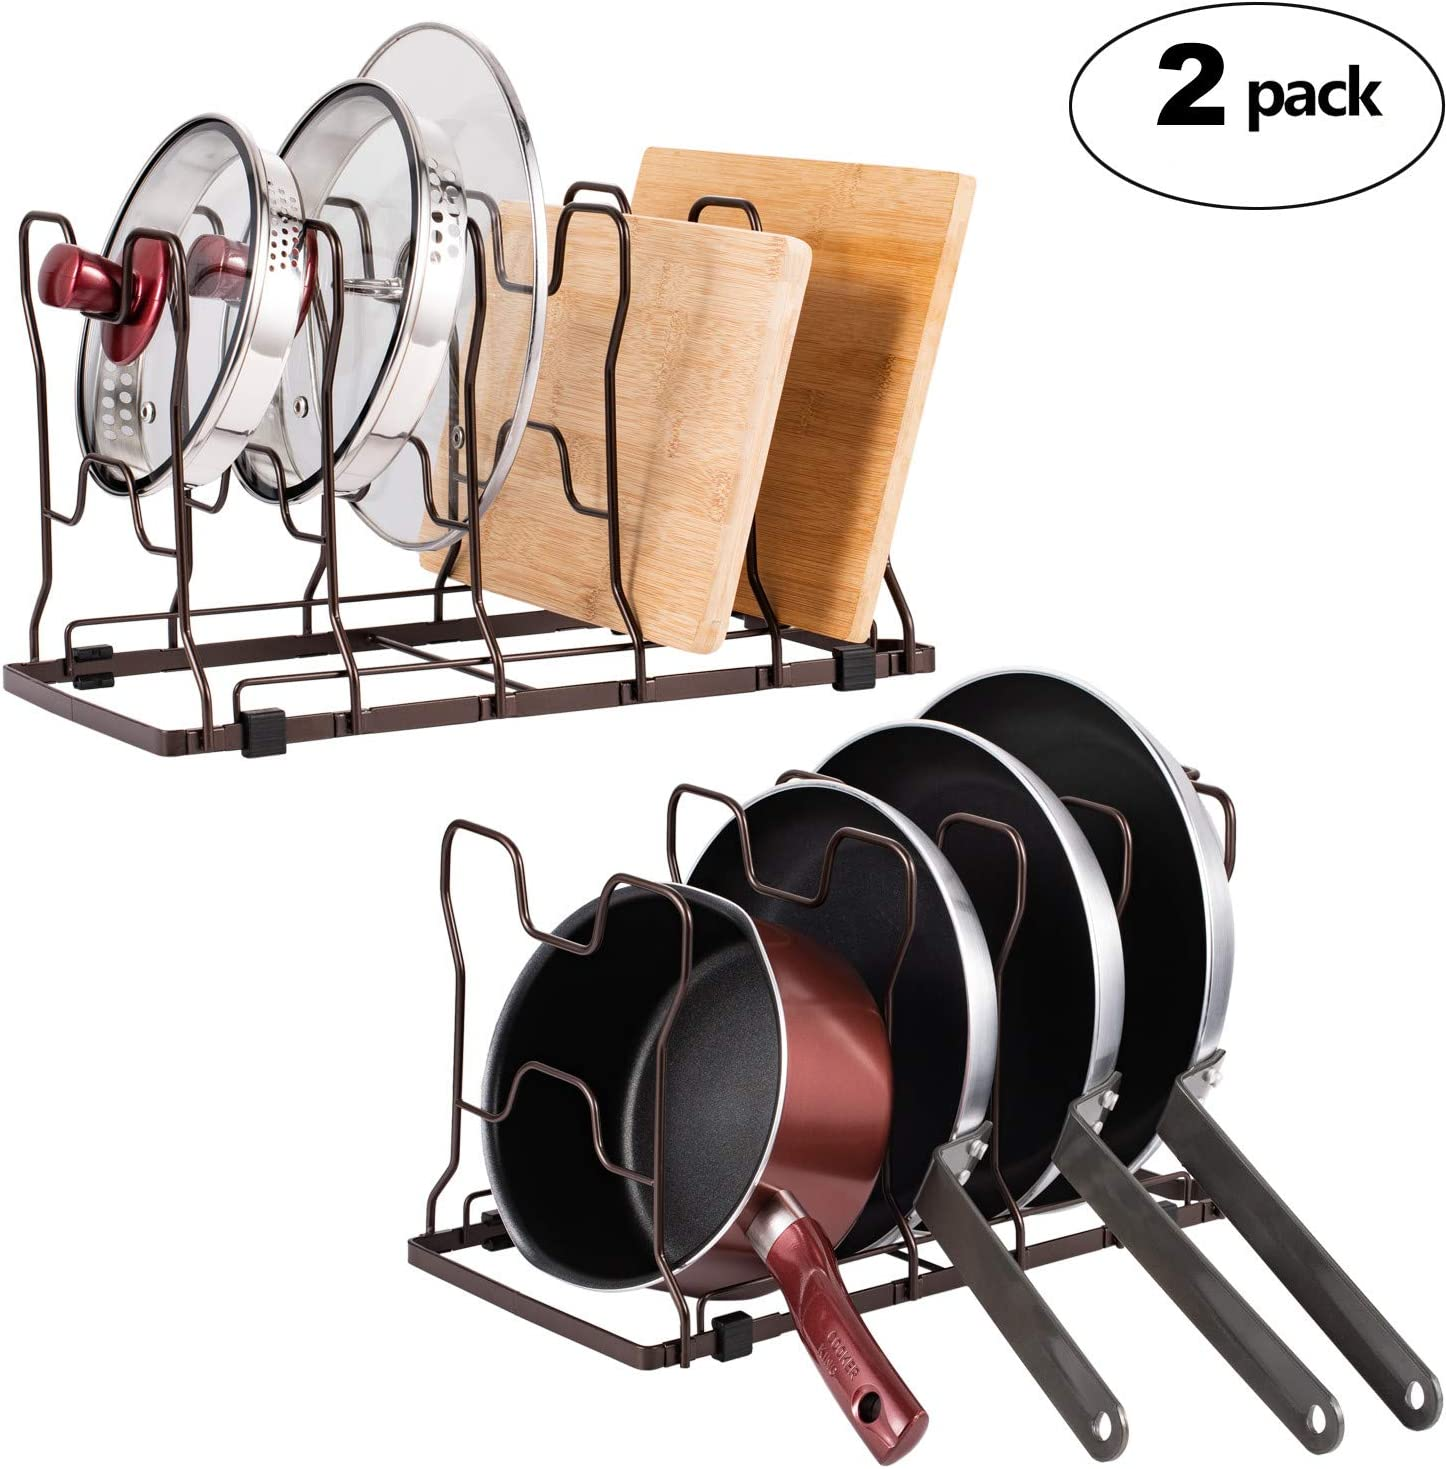 2 Pack Kitchen Cabinet Pantry Pan and Pot Lid Organizer Rack Adjustable Bakeware Cutting Board Rack with Rubber Feet and Recess Design Black